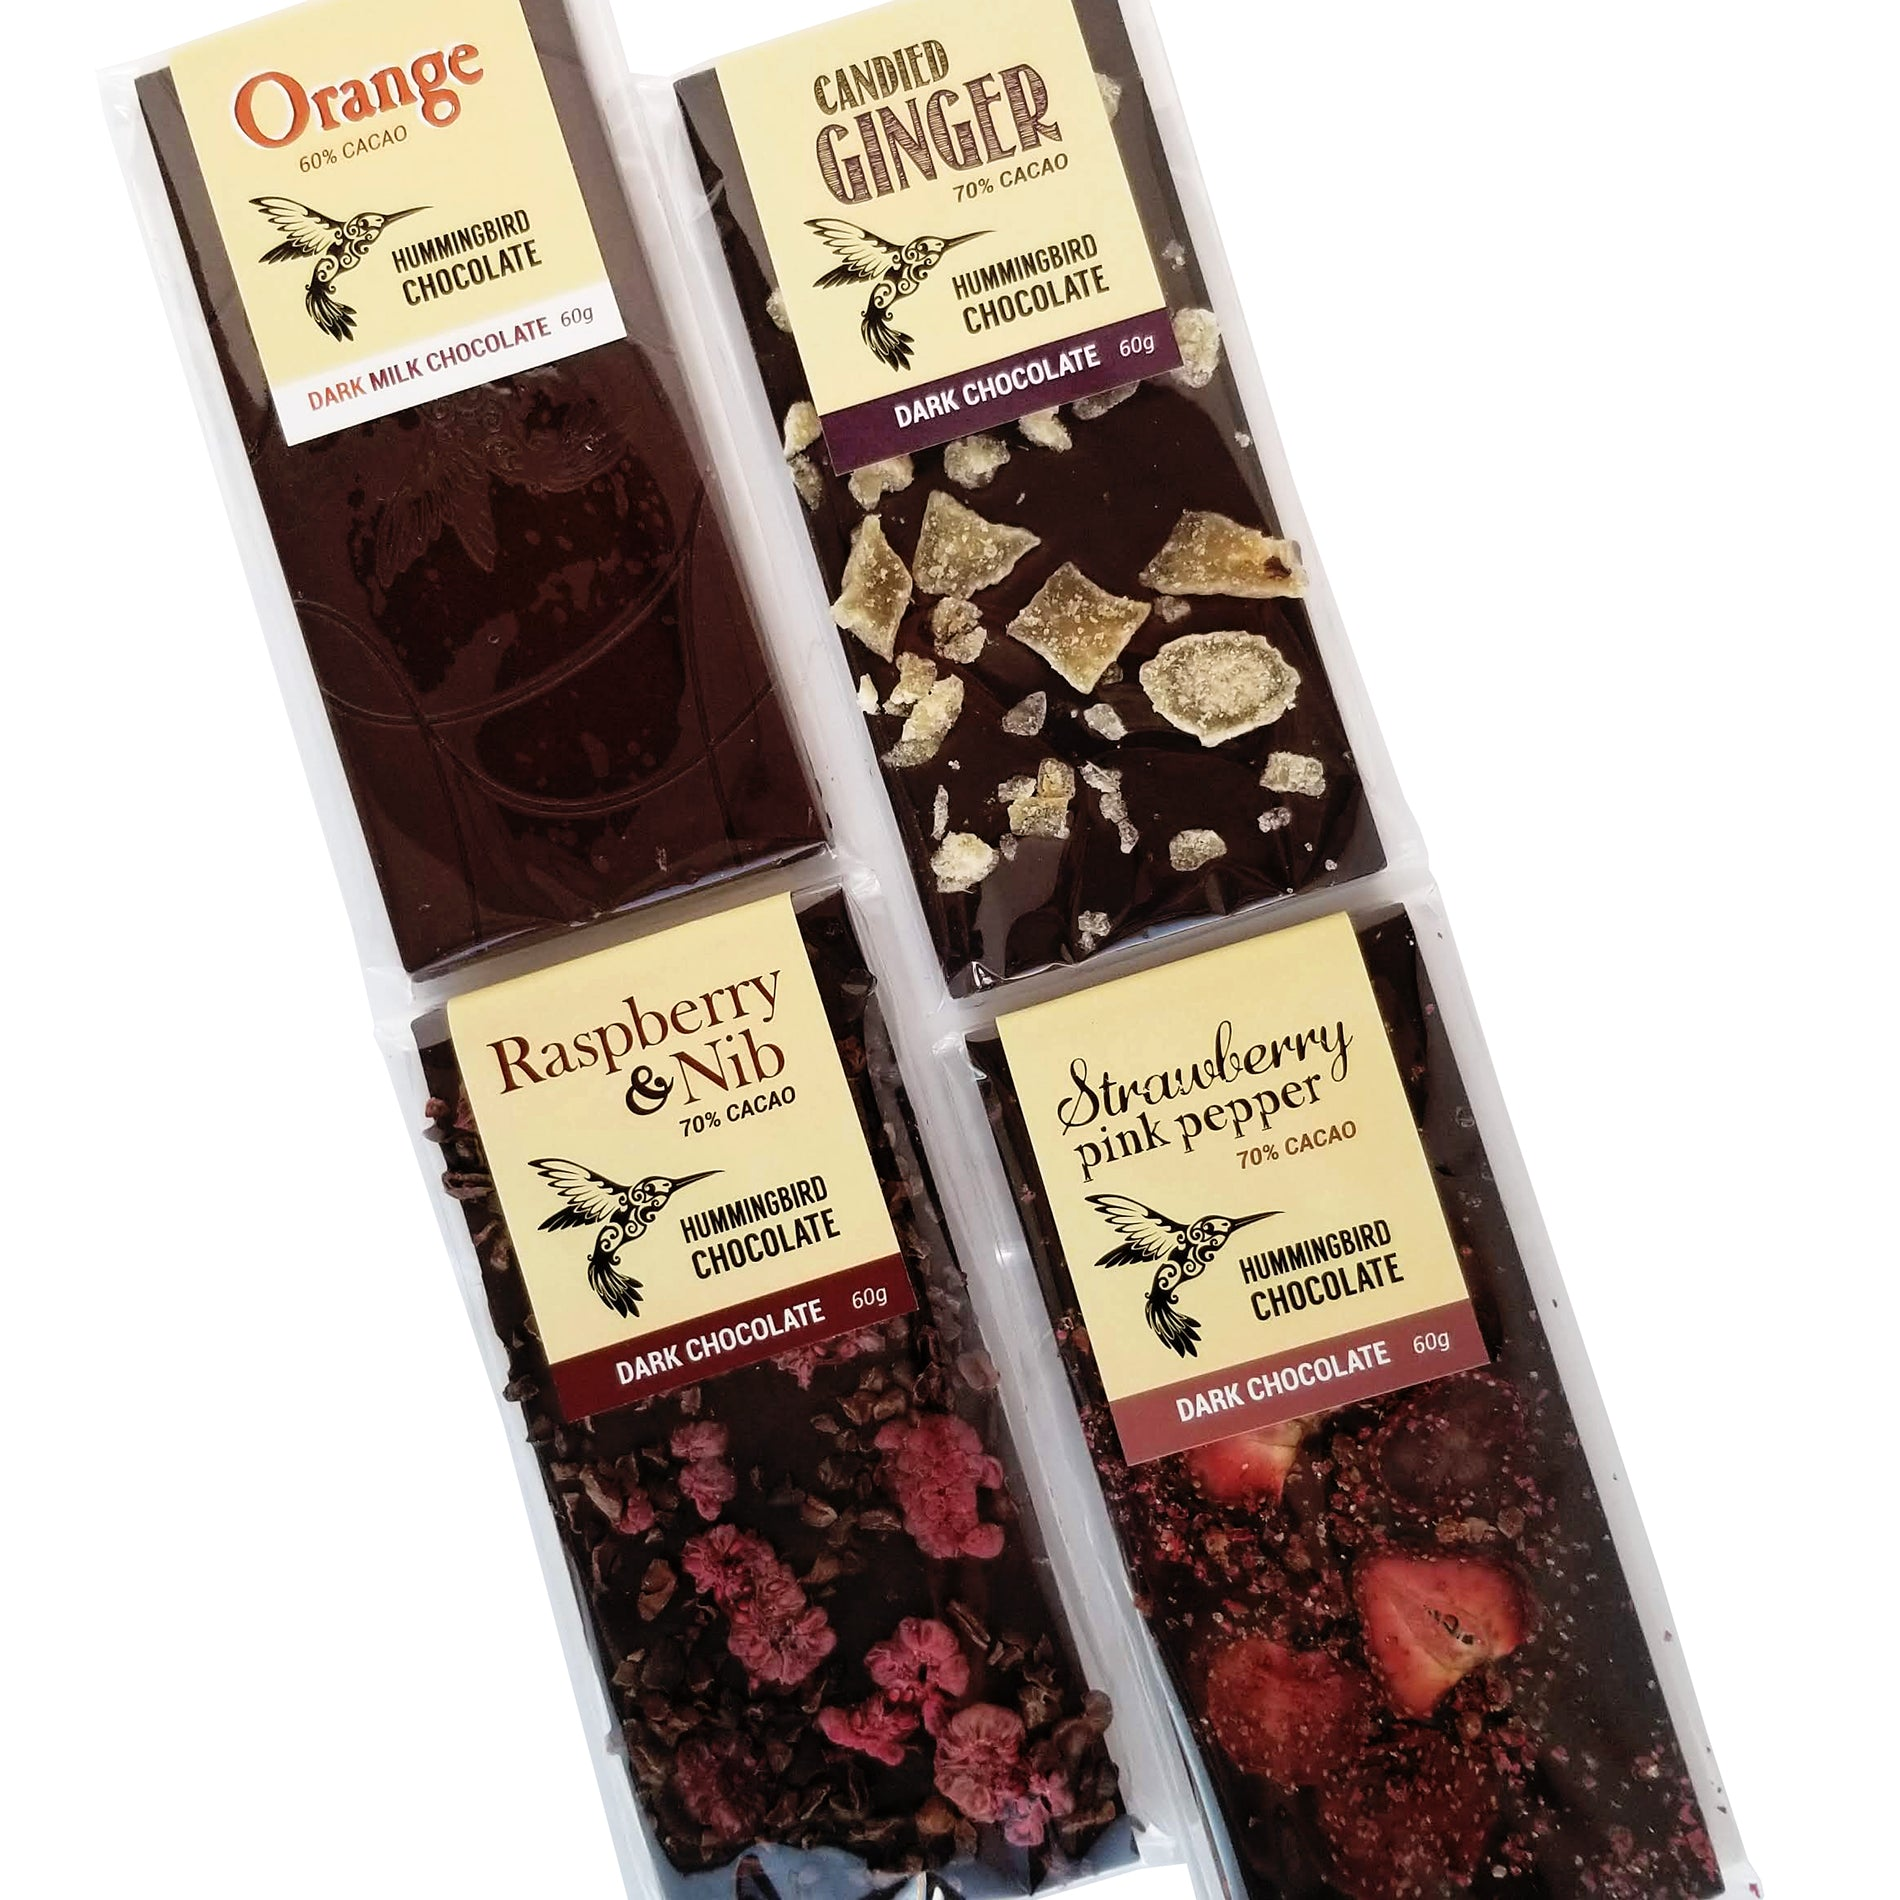 Hummingbird bean to bar chocolate berry, ginger and orange